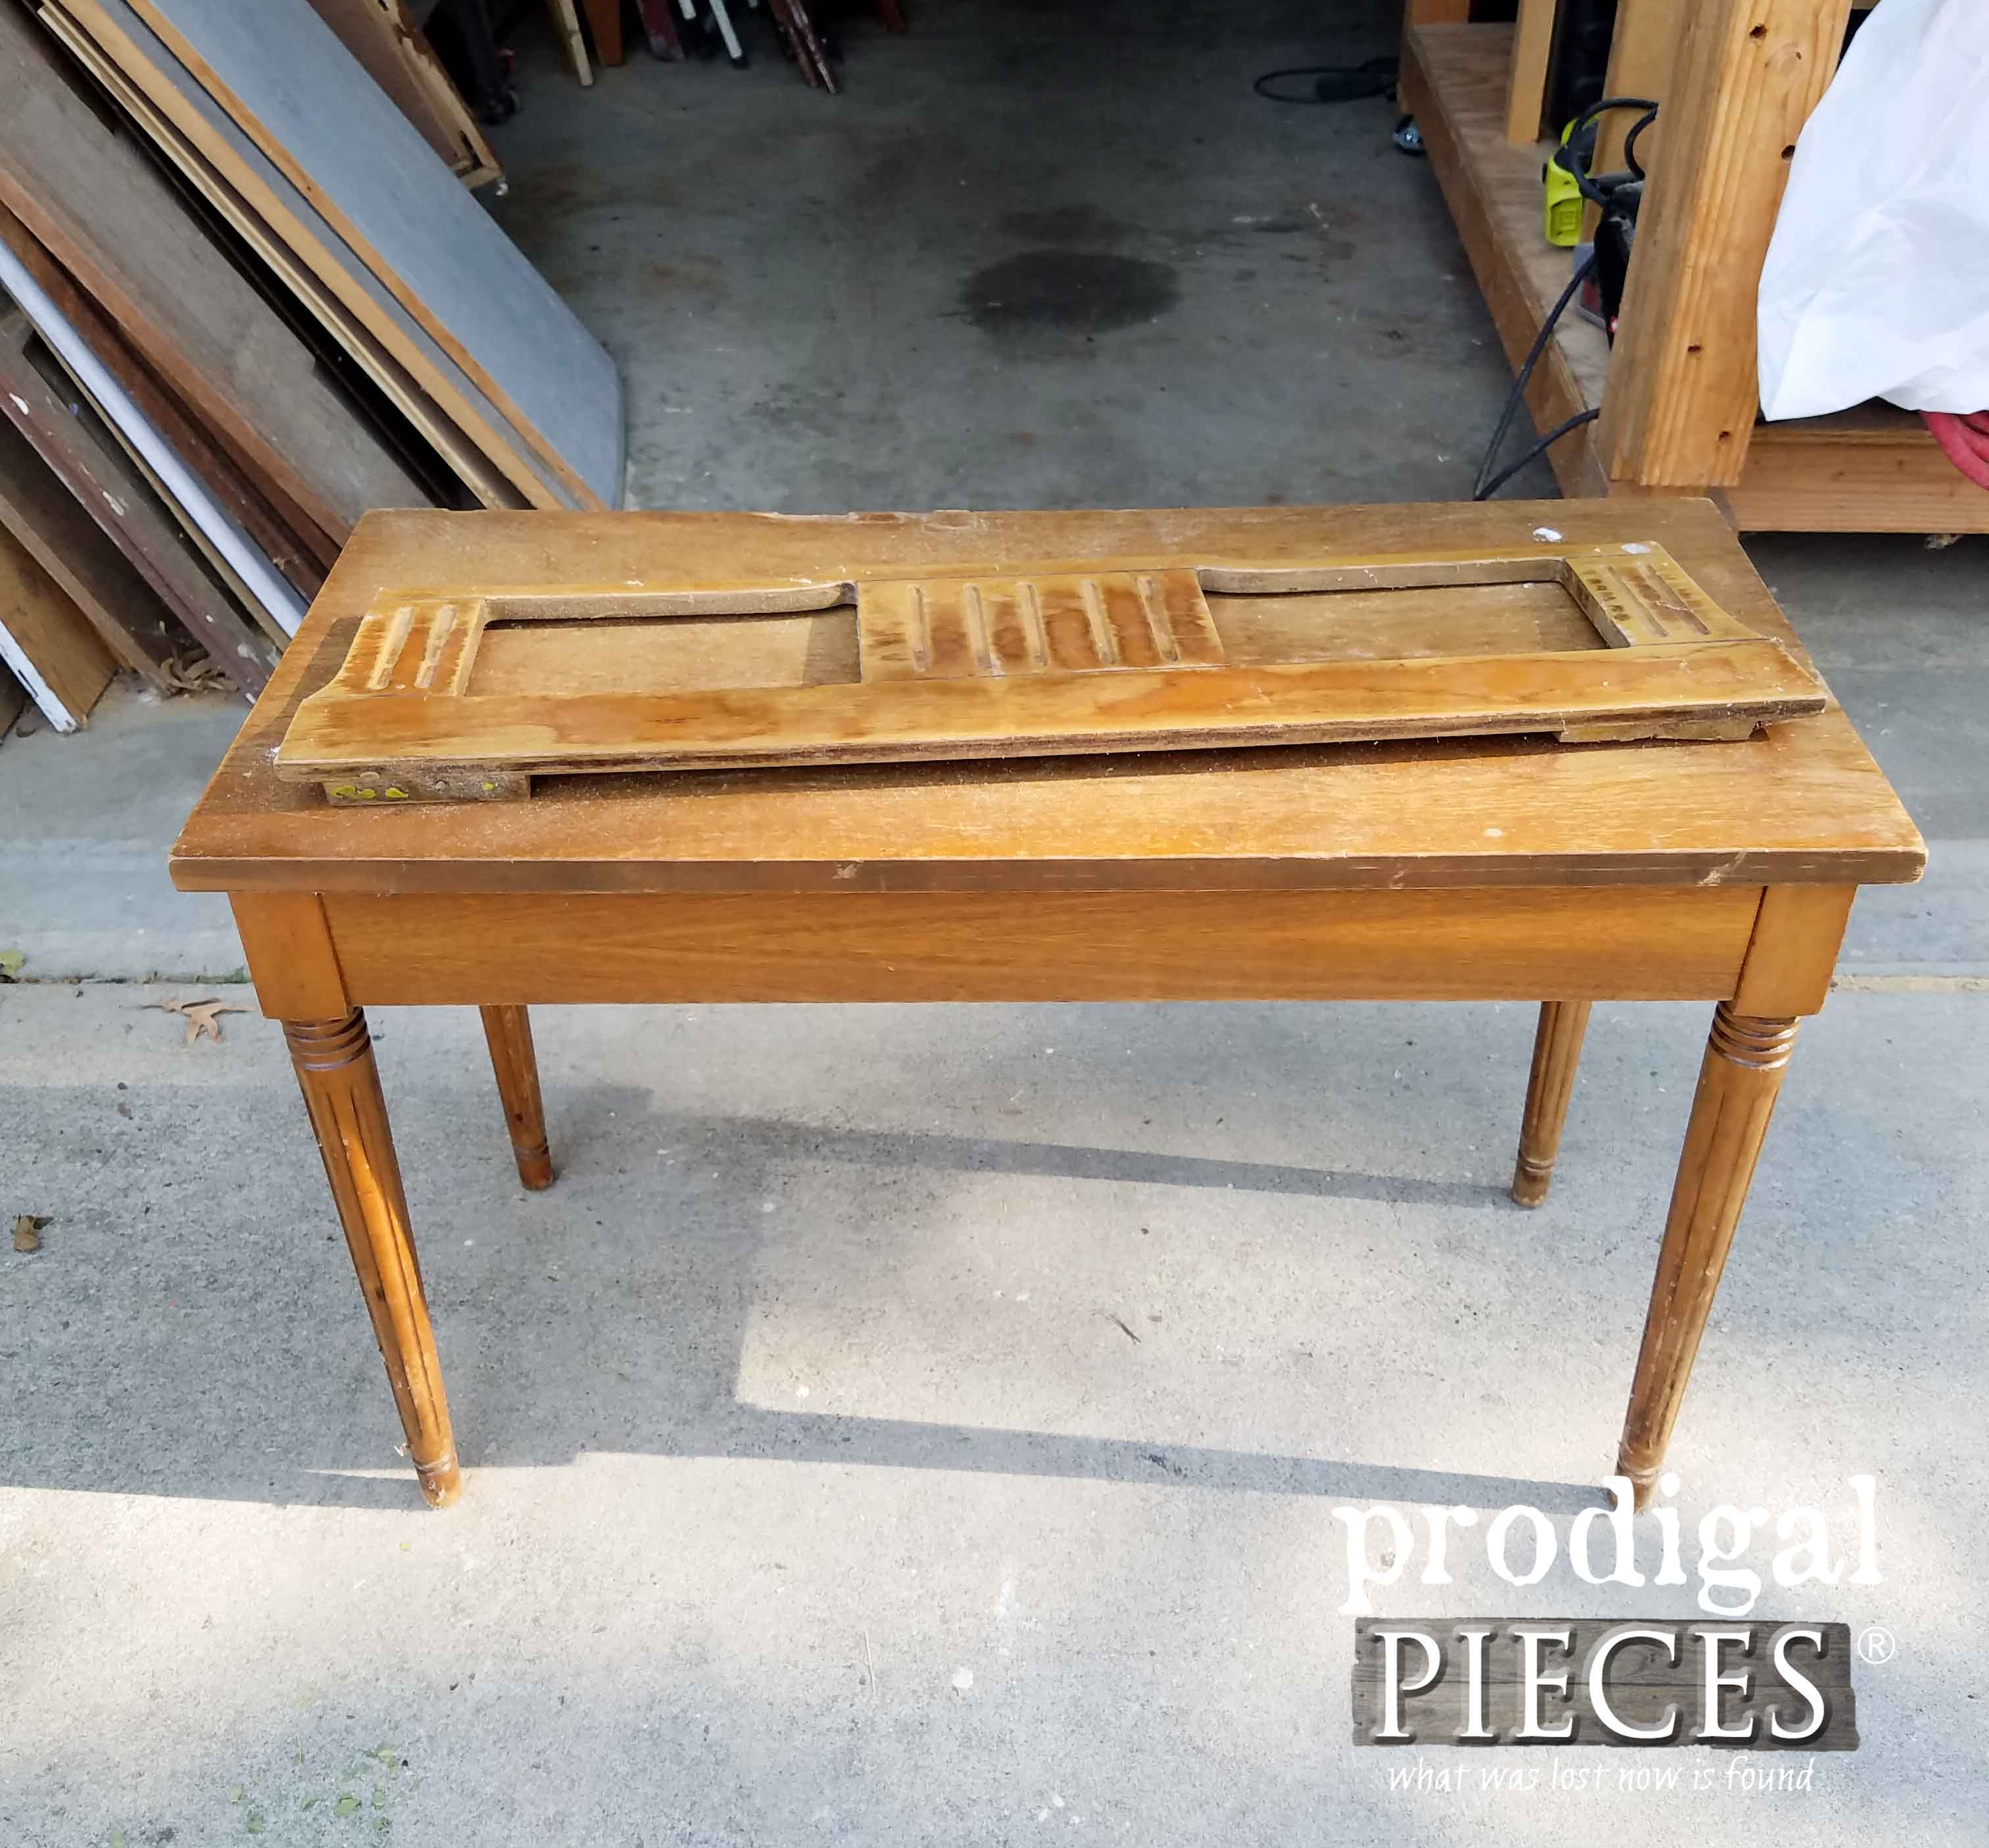 Curbside Piano Bench before Makeover by Prodigal Pieces | prodigalpieces.com